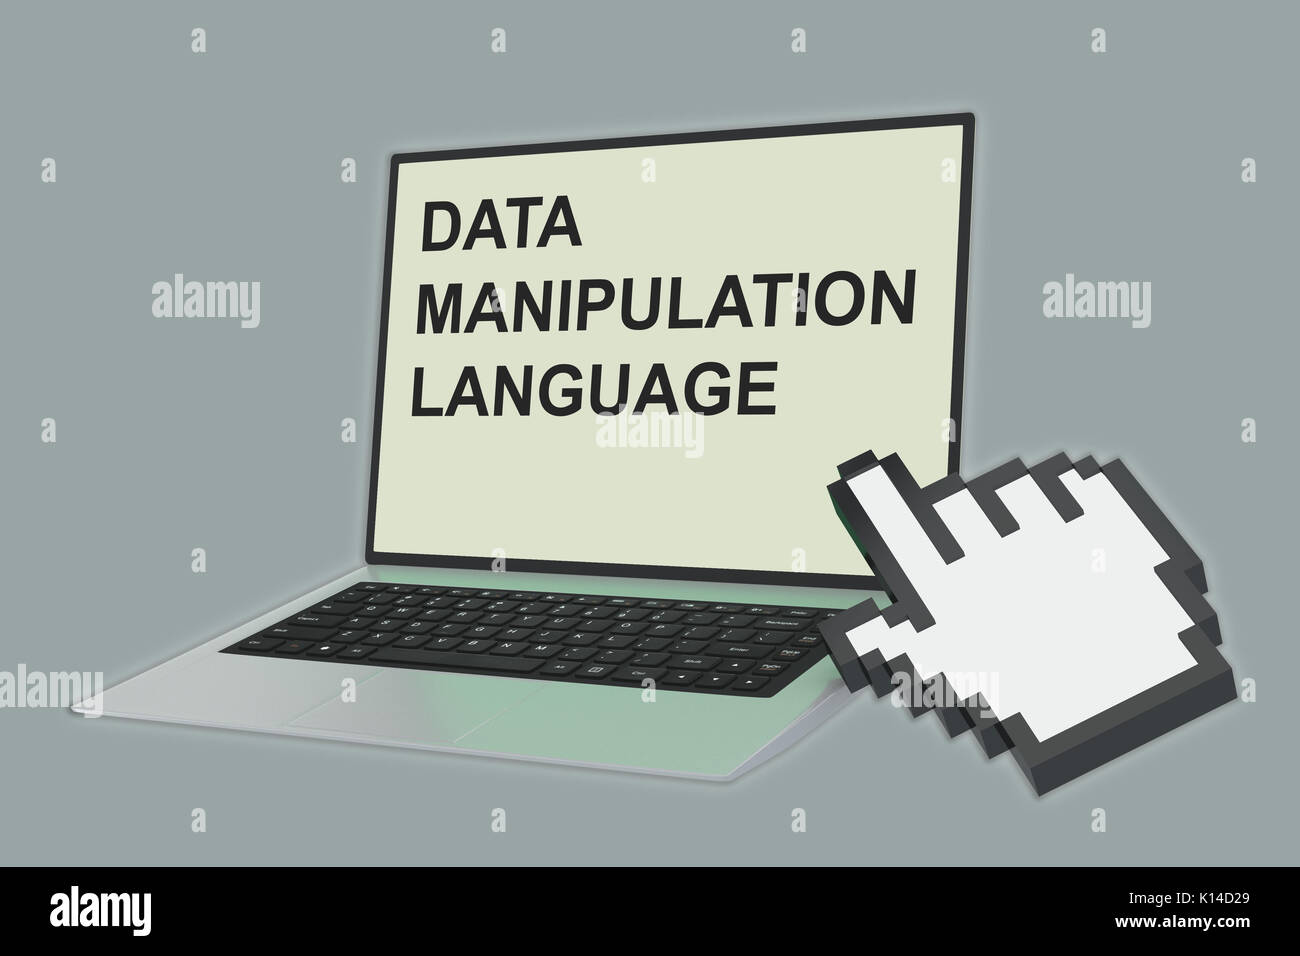 3D illustration of 'DATA MANIPULATION LANGUAGE' script with pointing hand icon pointing at the laptop screen - Stock Image